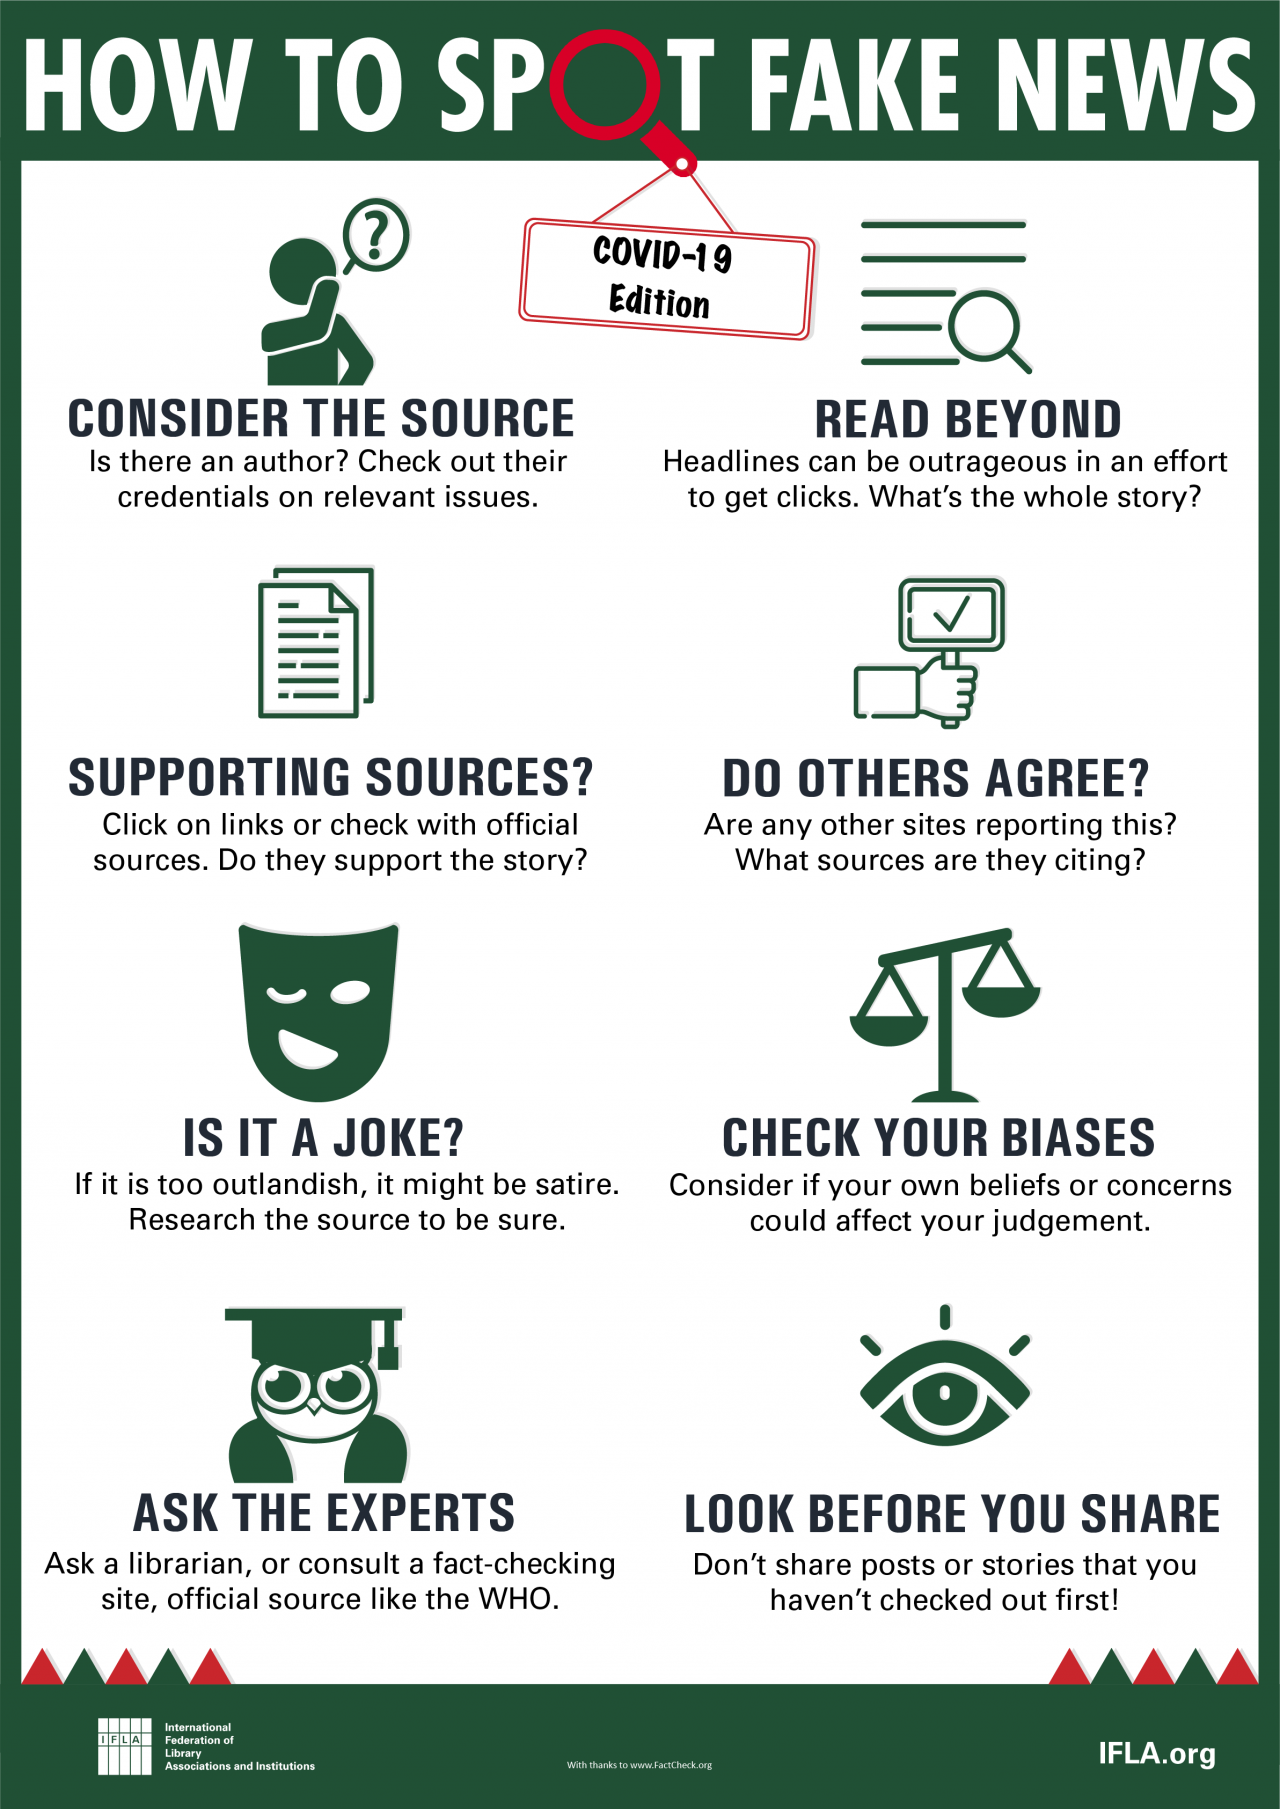 Hot to Spot Fake News - 2019 Edition Infographic